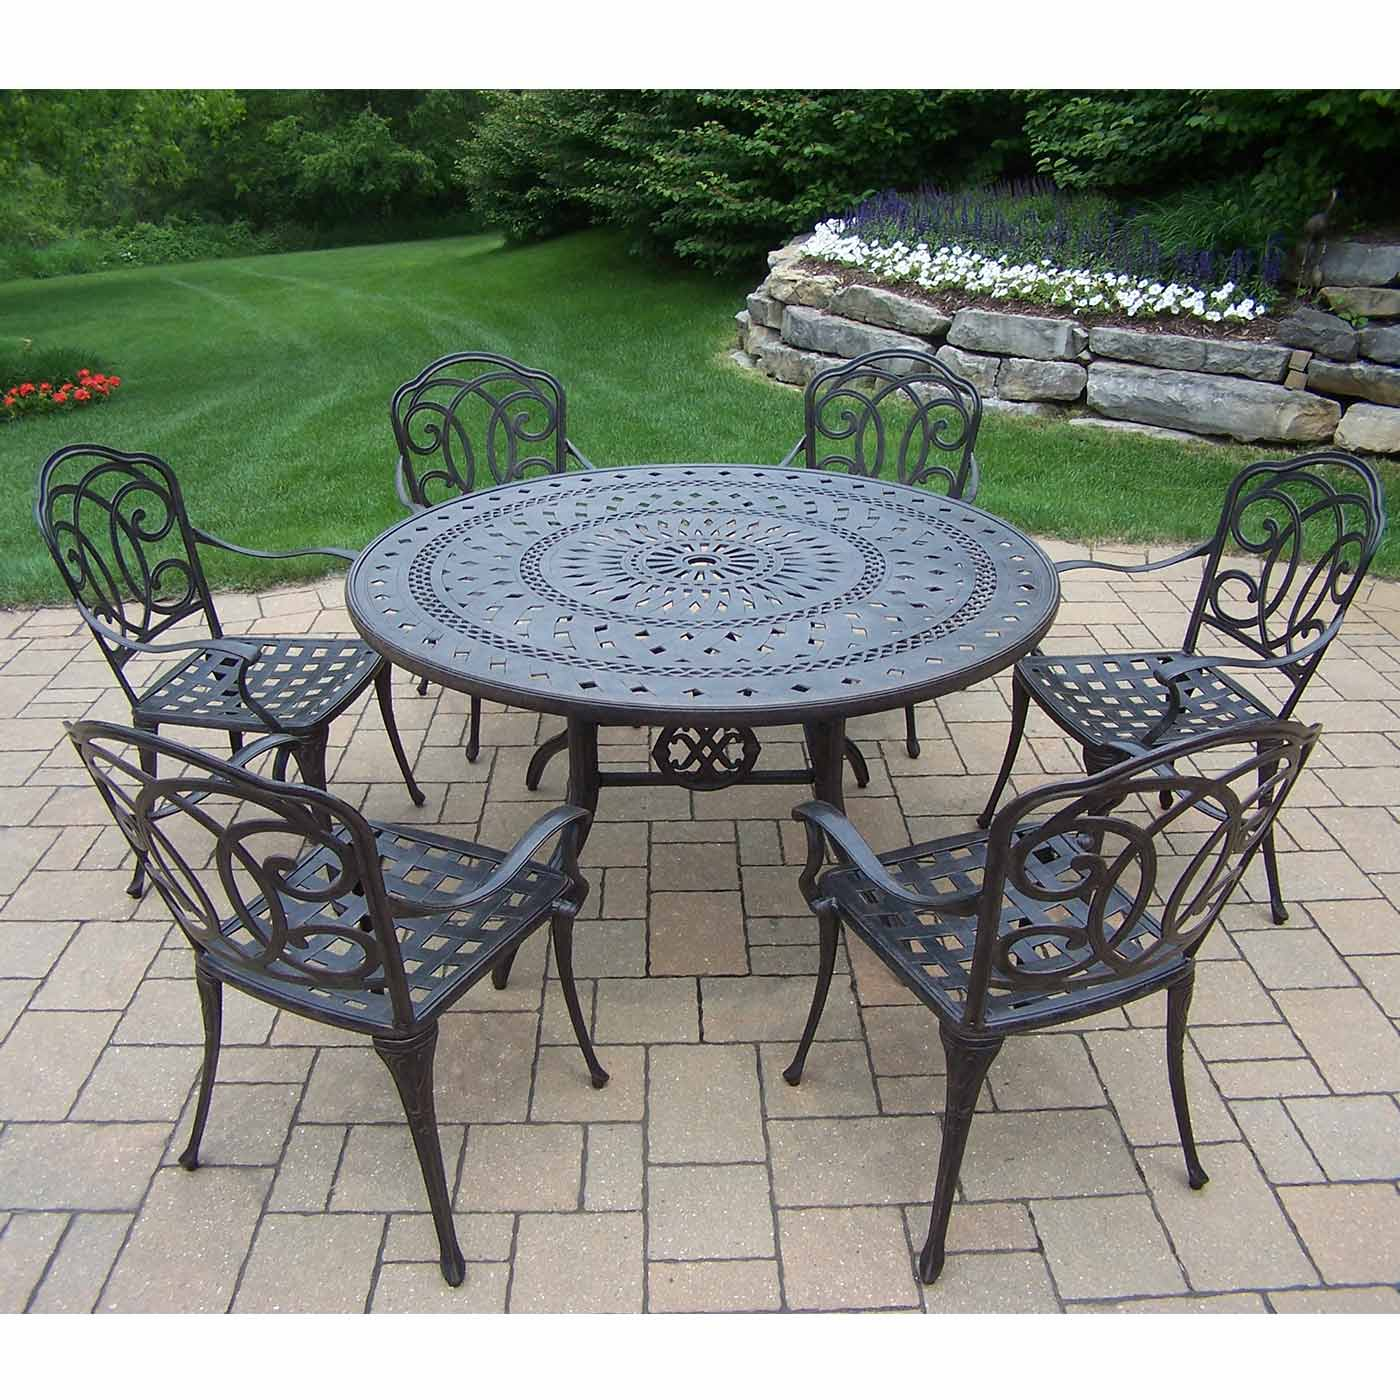 7 Piece Round Patio Dining Set Oakland Living Berkley 7 Piece Aged Patio Set With 54